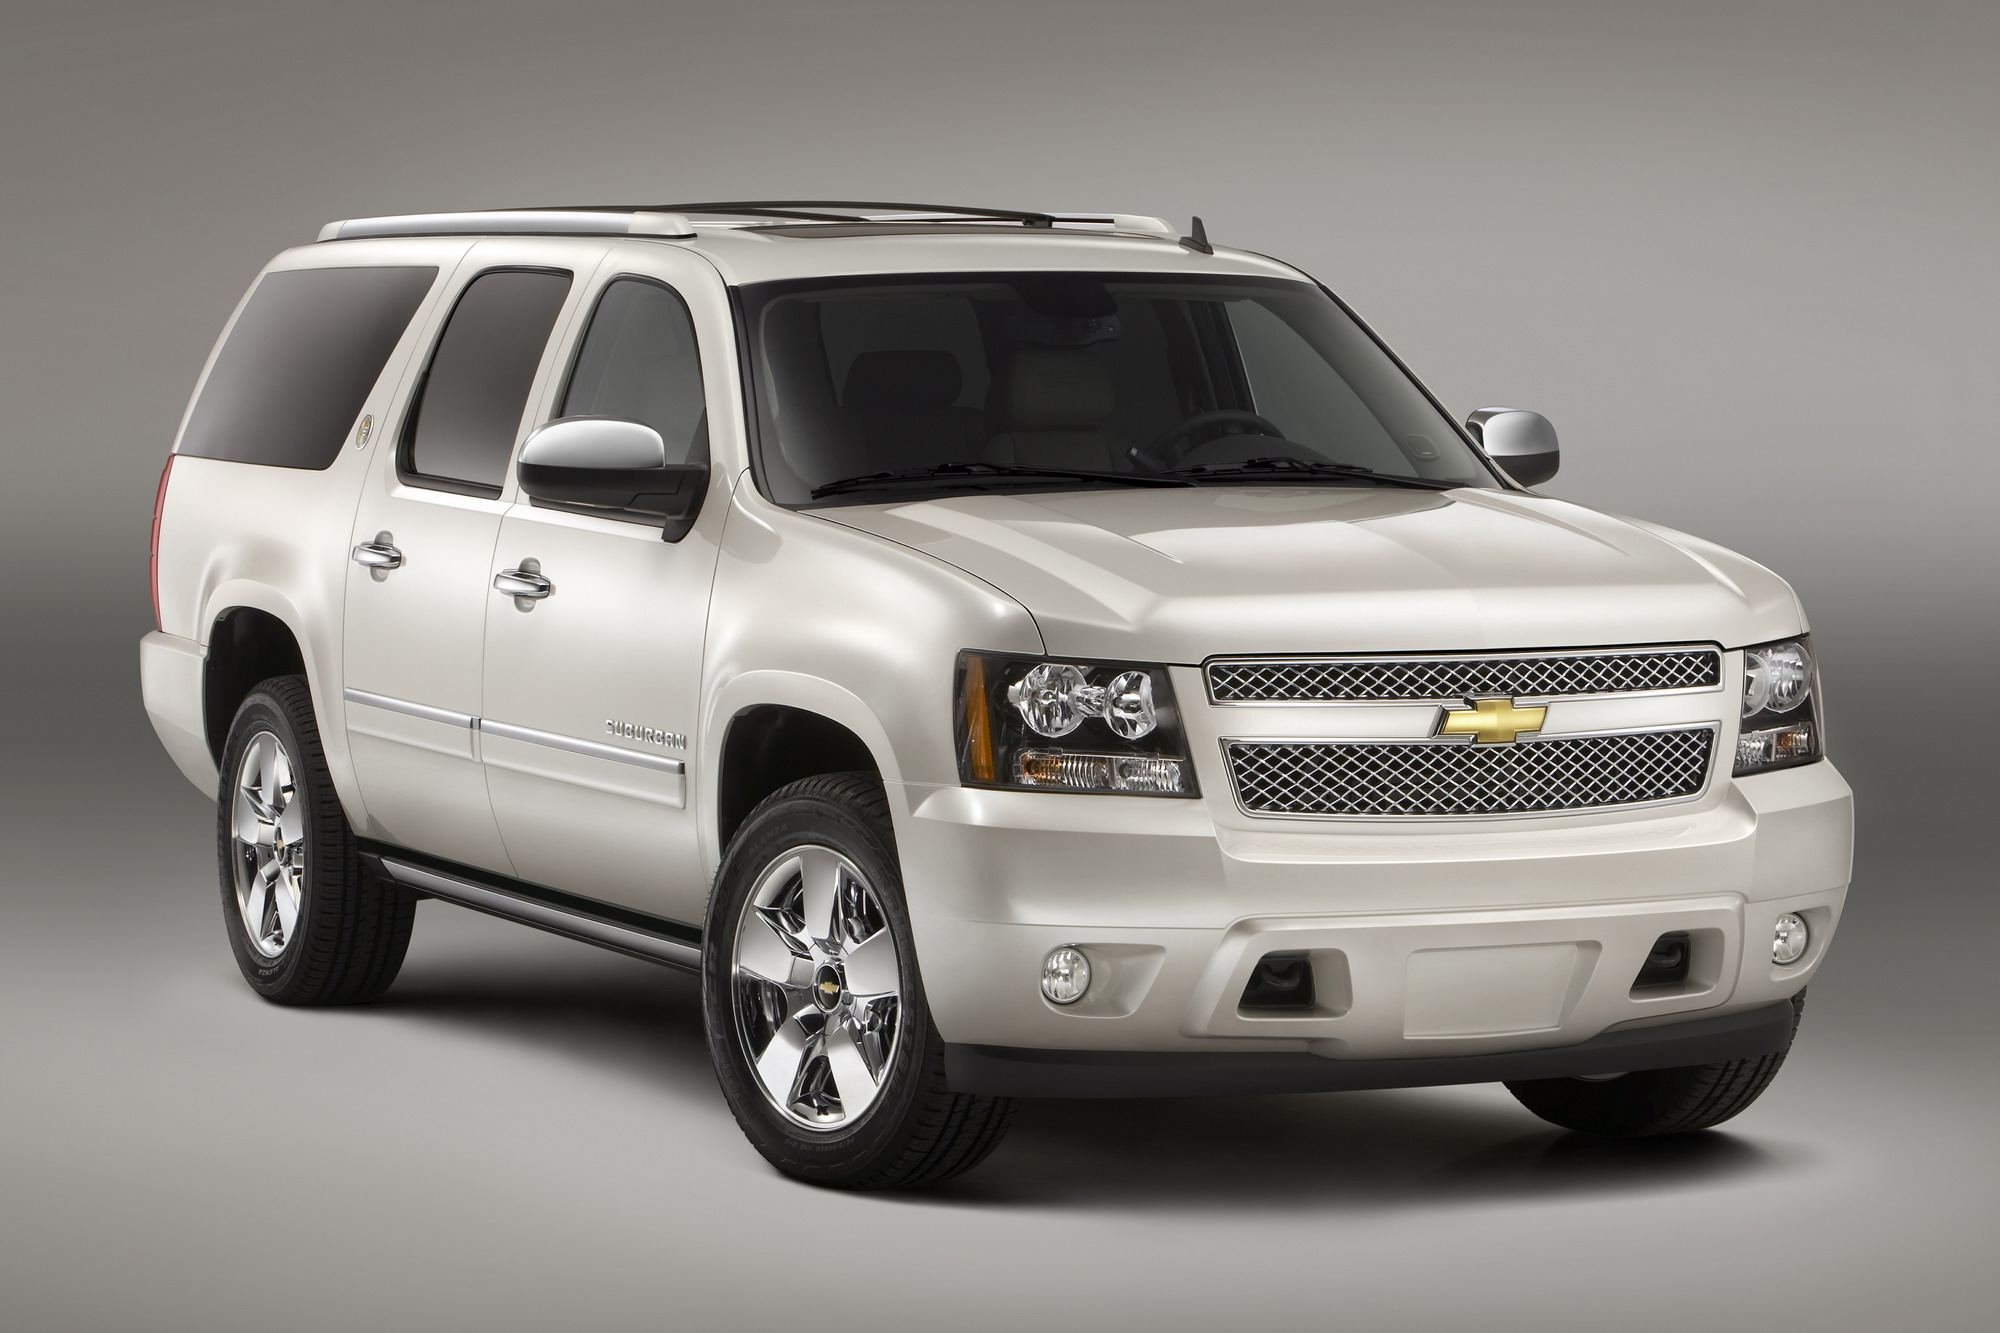 2010 Chevrolet Suburban 75th Anniversary Top Speed